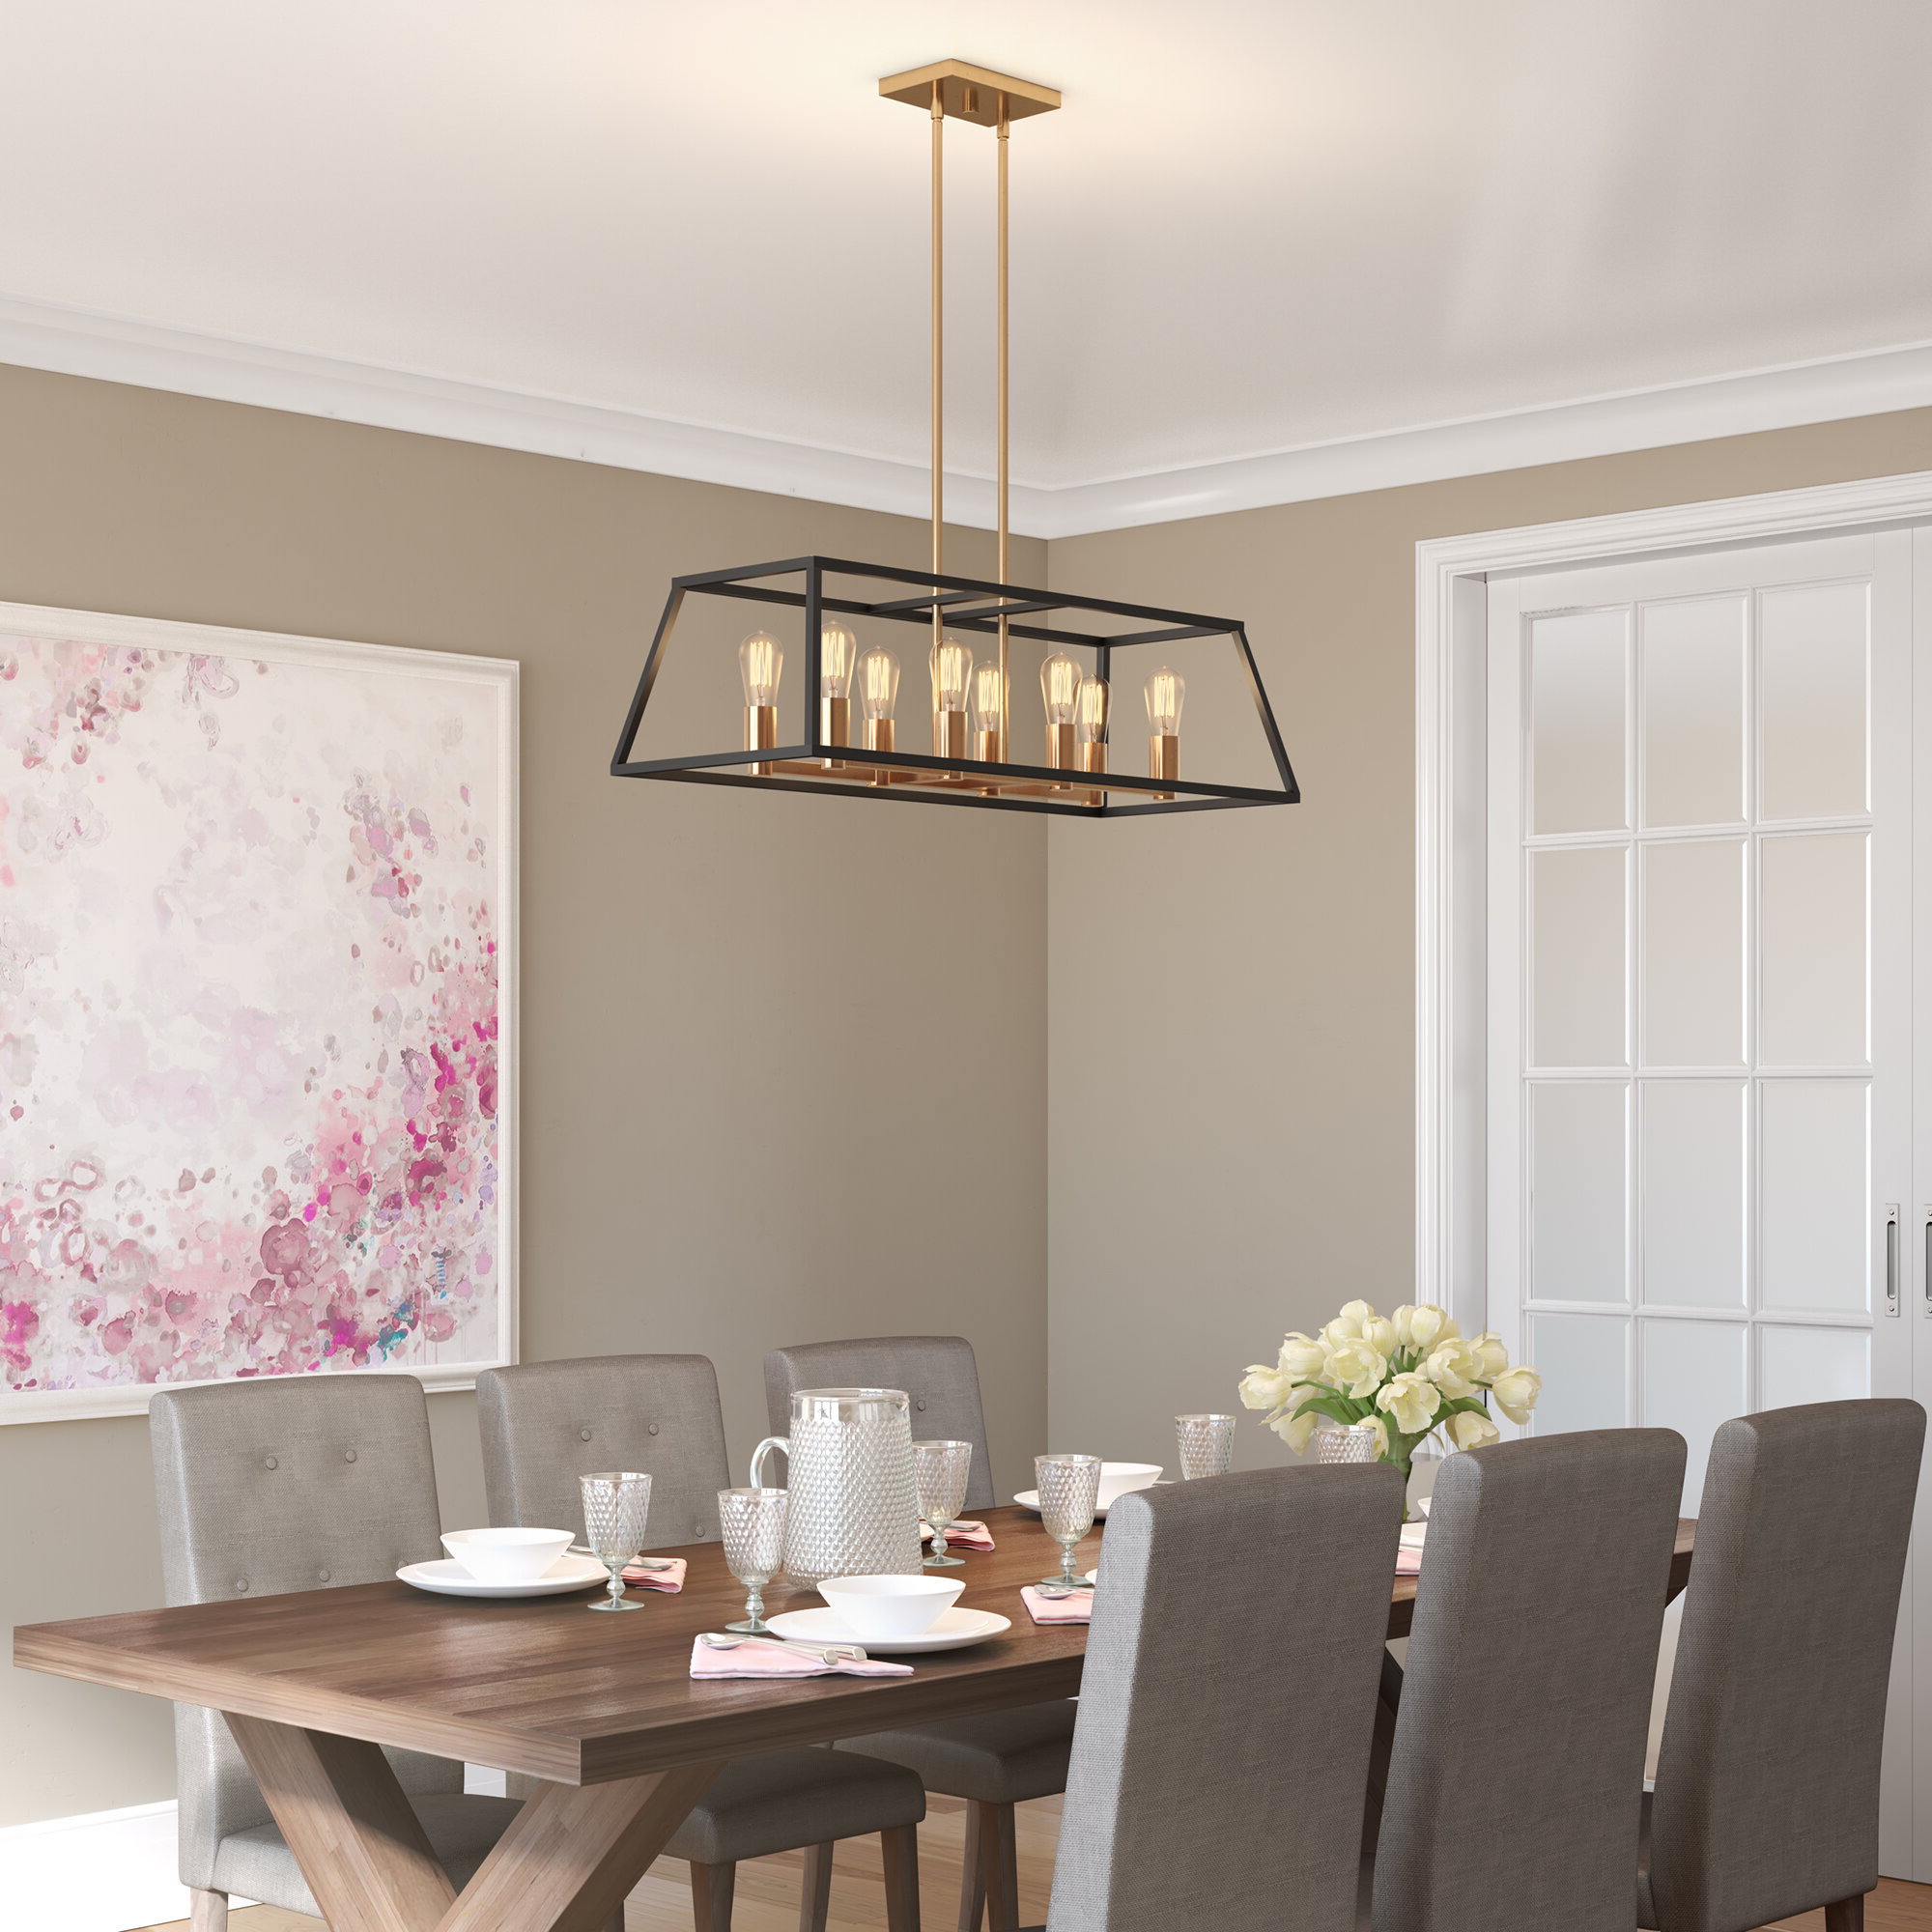 Bourgoin 8 Light Kitchen Island Pendant In Well Known Hinerman 5 Light Kitchen Island Pendants (View 11 of 25)